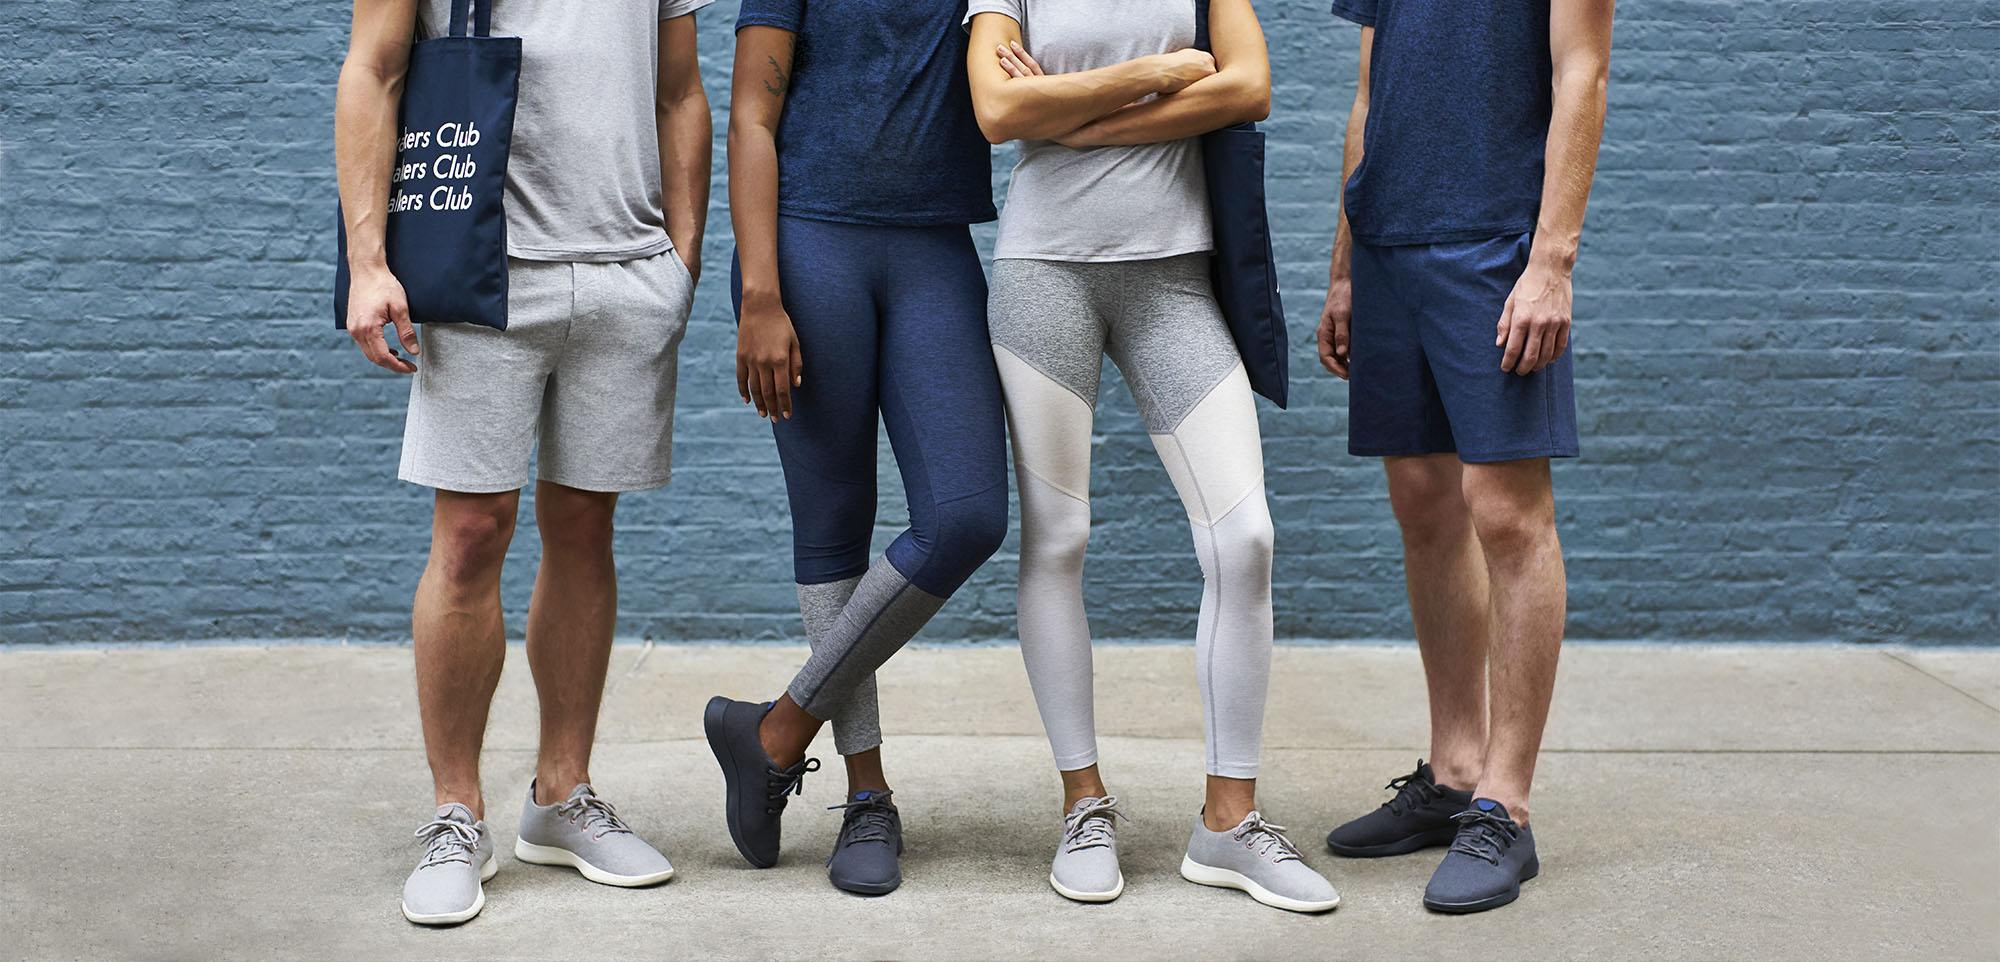 This new Out of doors Voices x Allbirds package is the season's coziest activewear collab